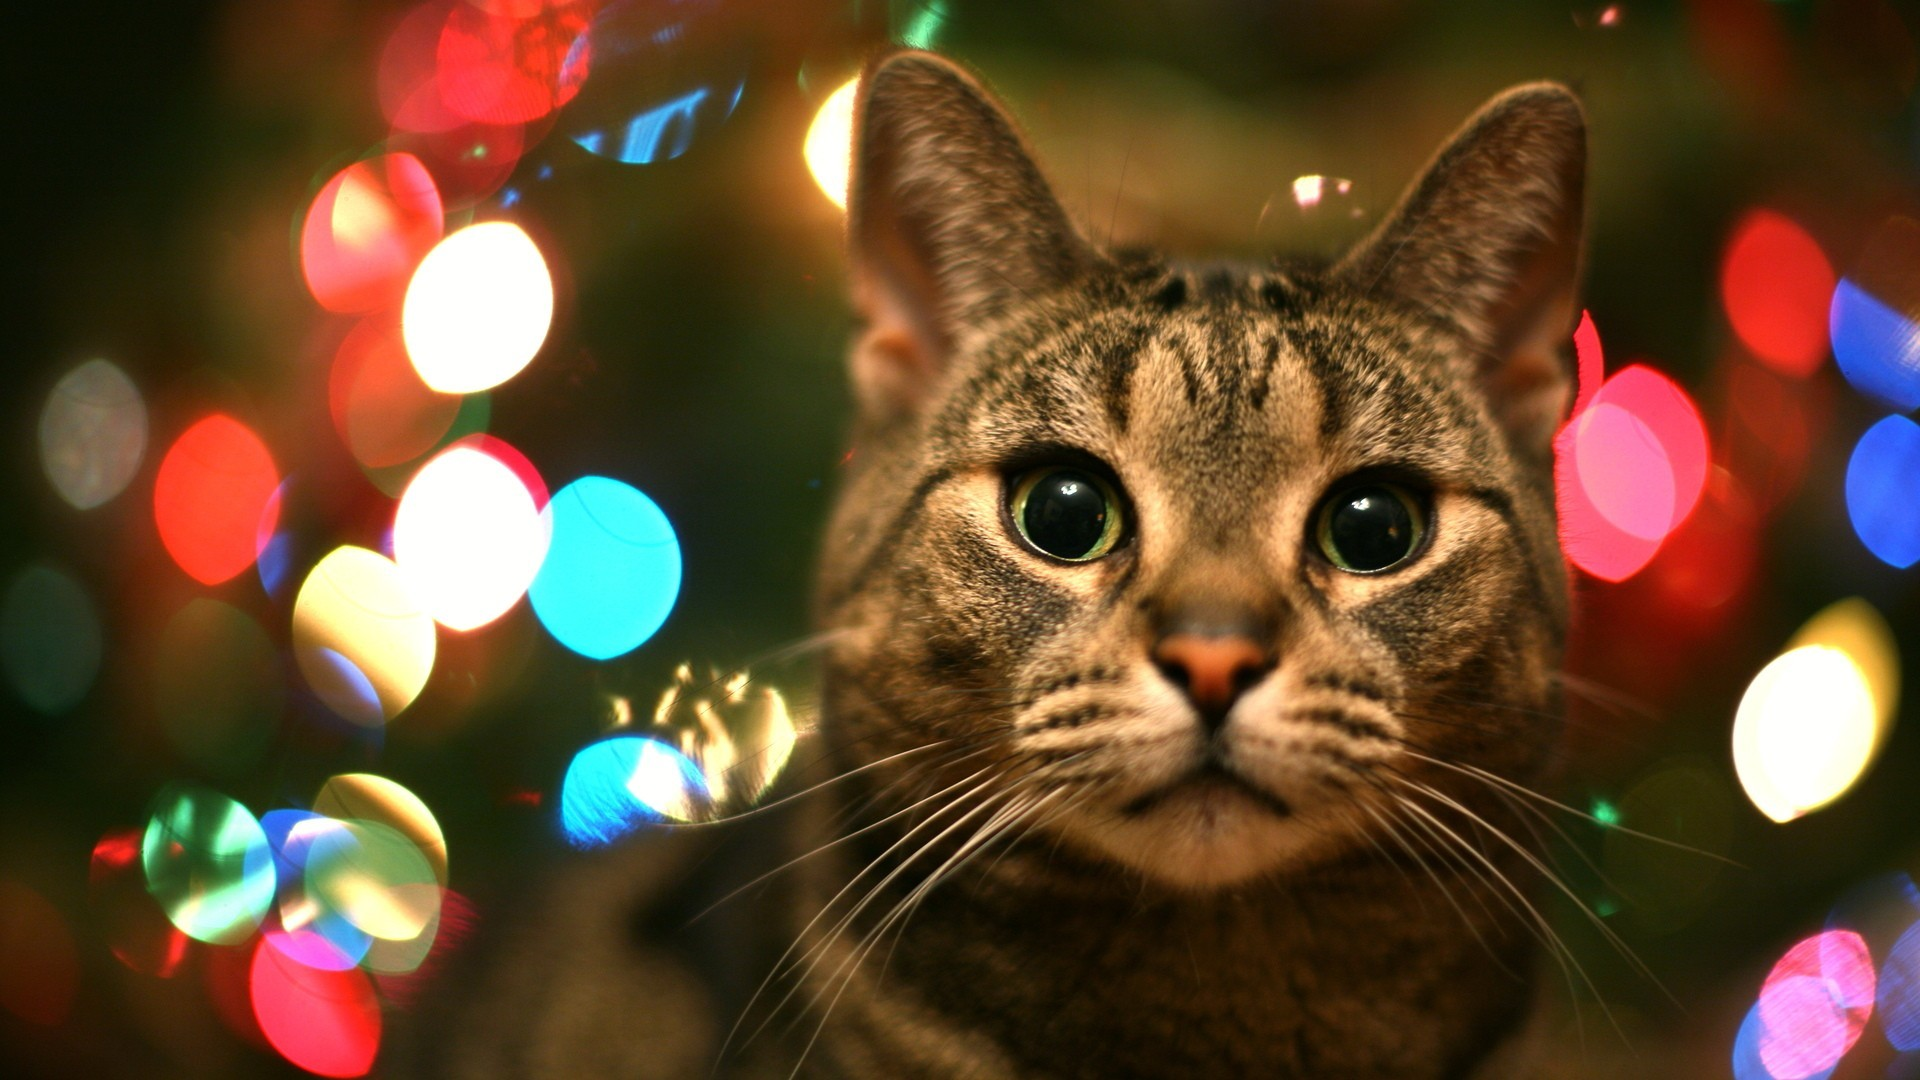 Tabby Cat In Christmas Lights   High Quality Wallpapers,Wallpaper .